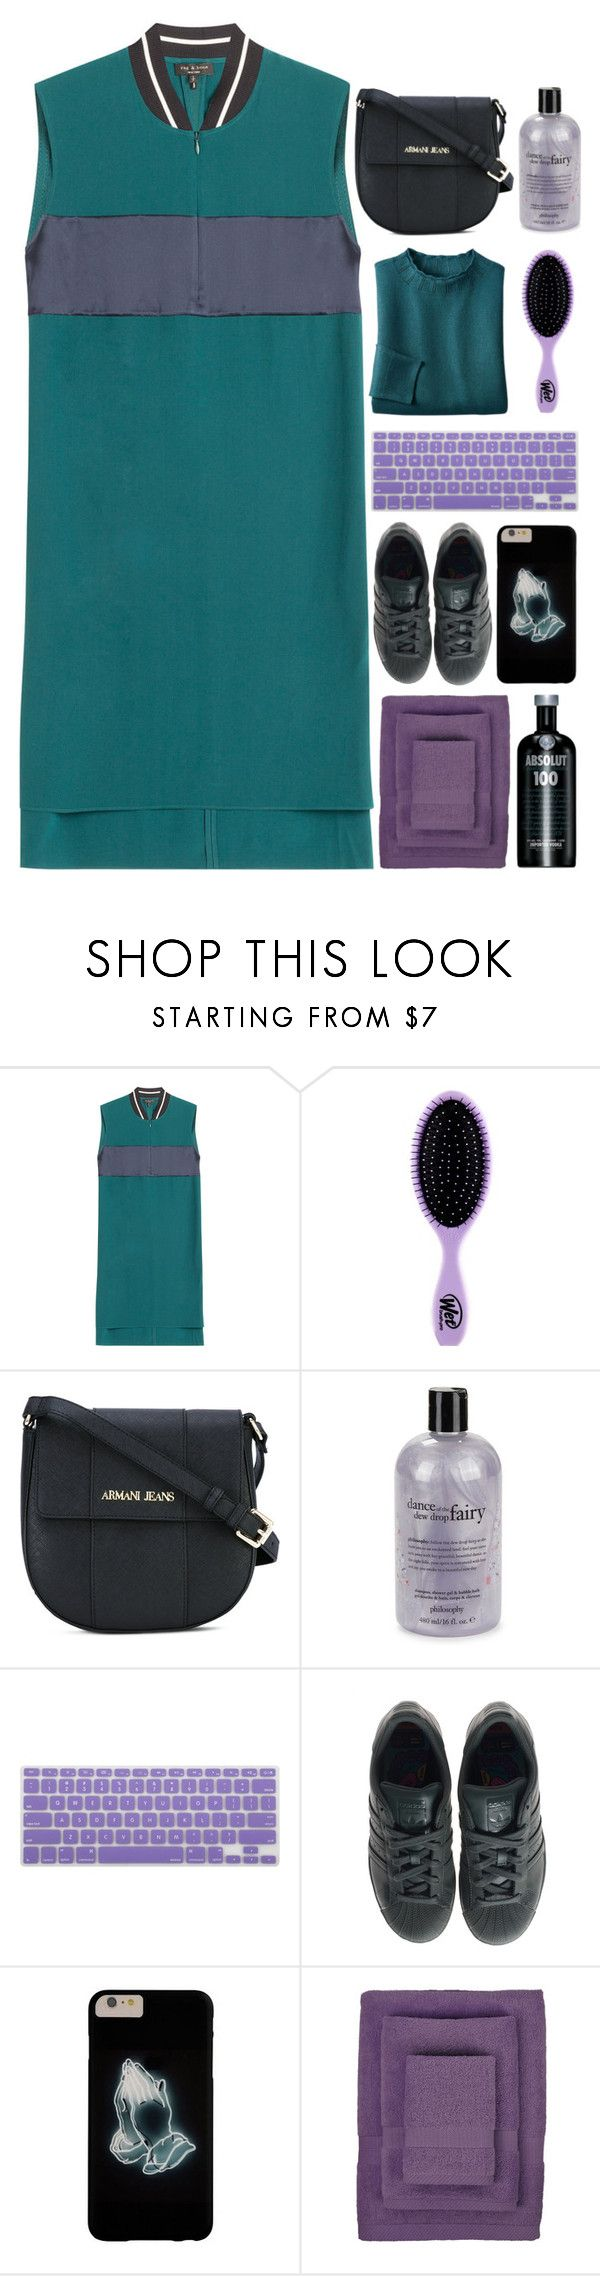 """6624"" by tiffanyelinor ❤ liked on Polyvore featuring rag & bone, The Wet Brush, Armani Jeans, philosophy, adidas and IGH"